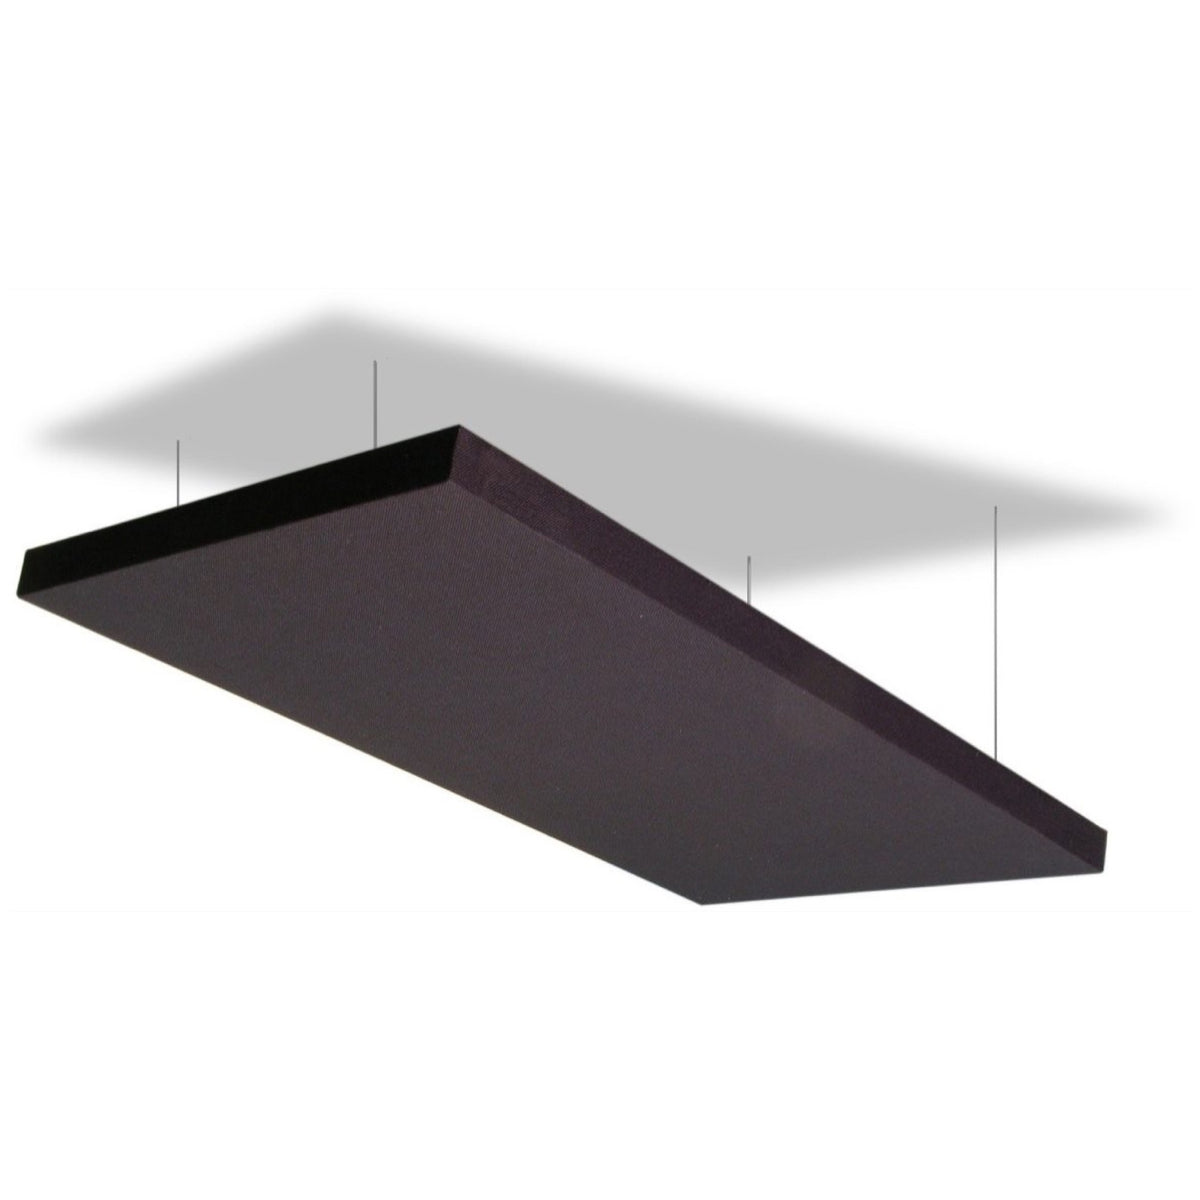 Primacoustic Stratus Broadband Ceiling Cloud, Black